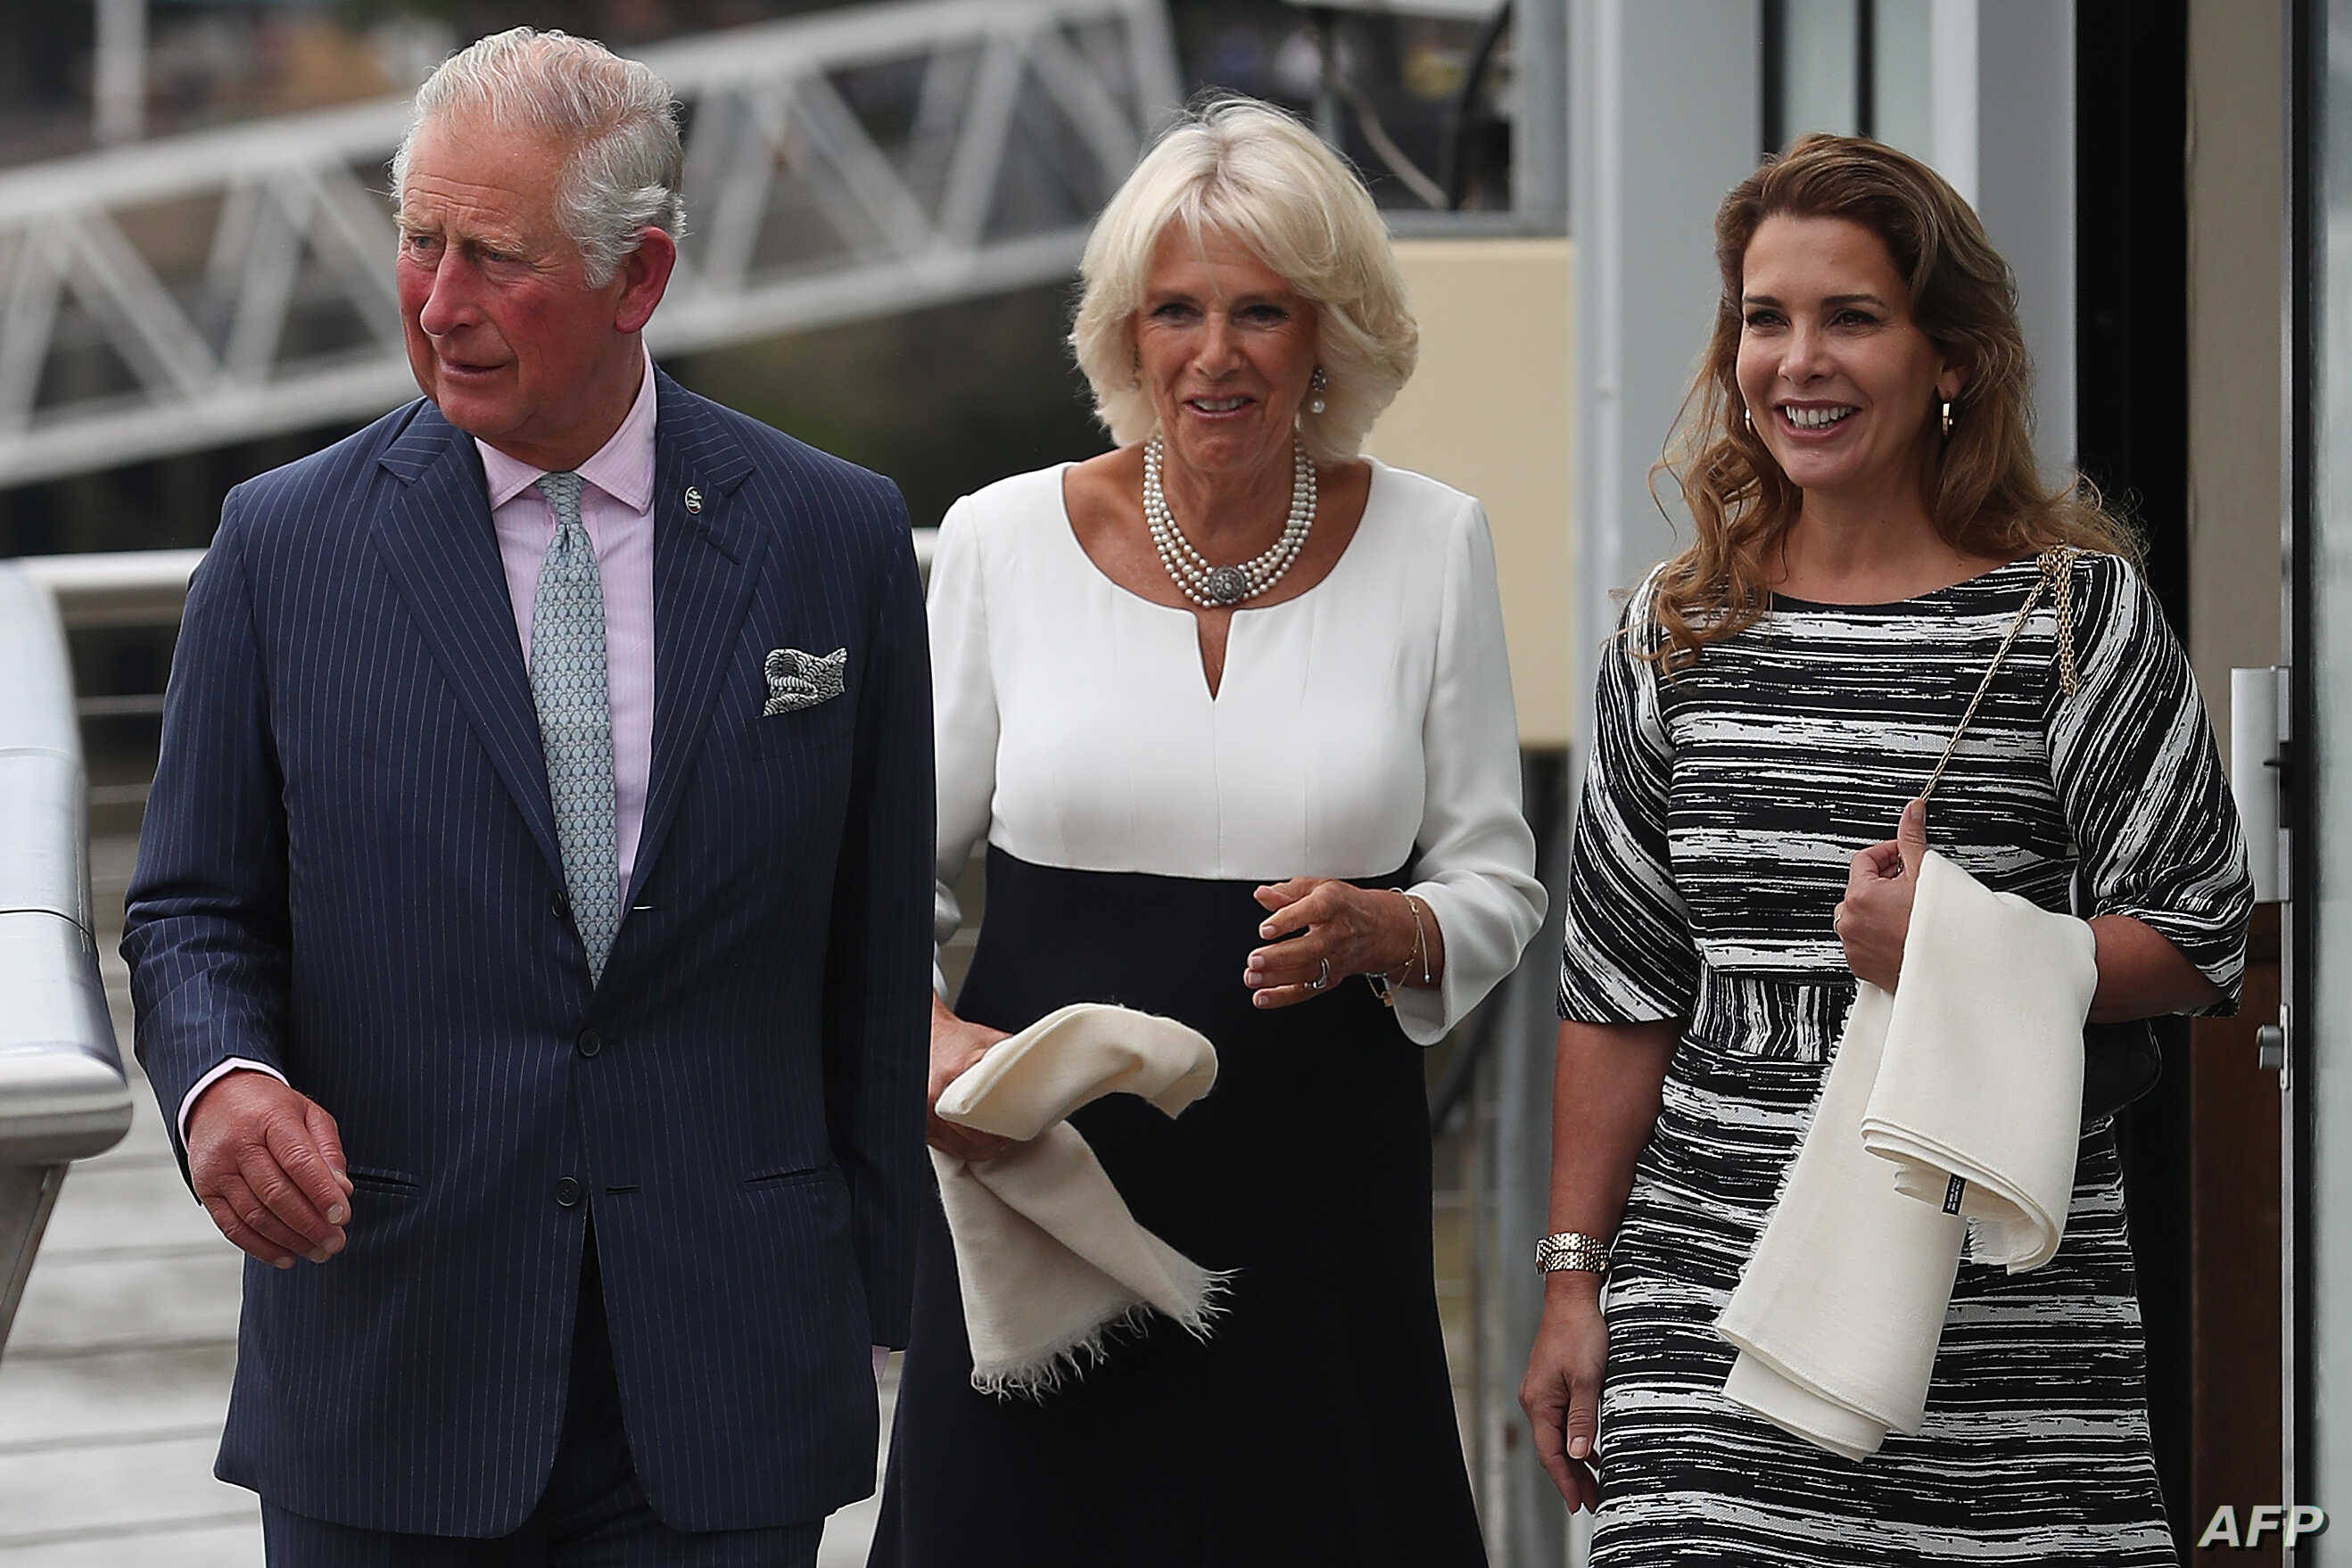 FILE - Britain's Prince Charles, Prince of Wales, left, and his wife Britain's Camilla, Duchess of Cornwall, center, walk with Jordan's Princess Haya bint al-Hussein in London, Sept. 5, 2018.